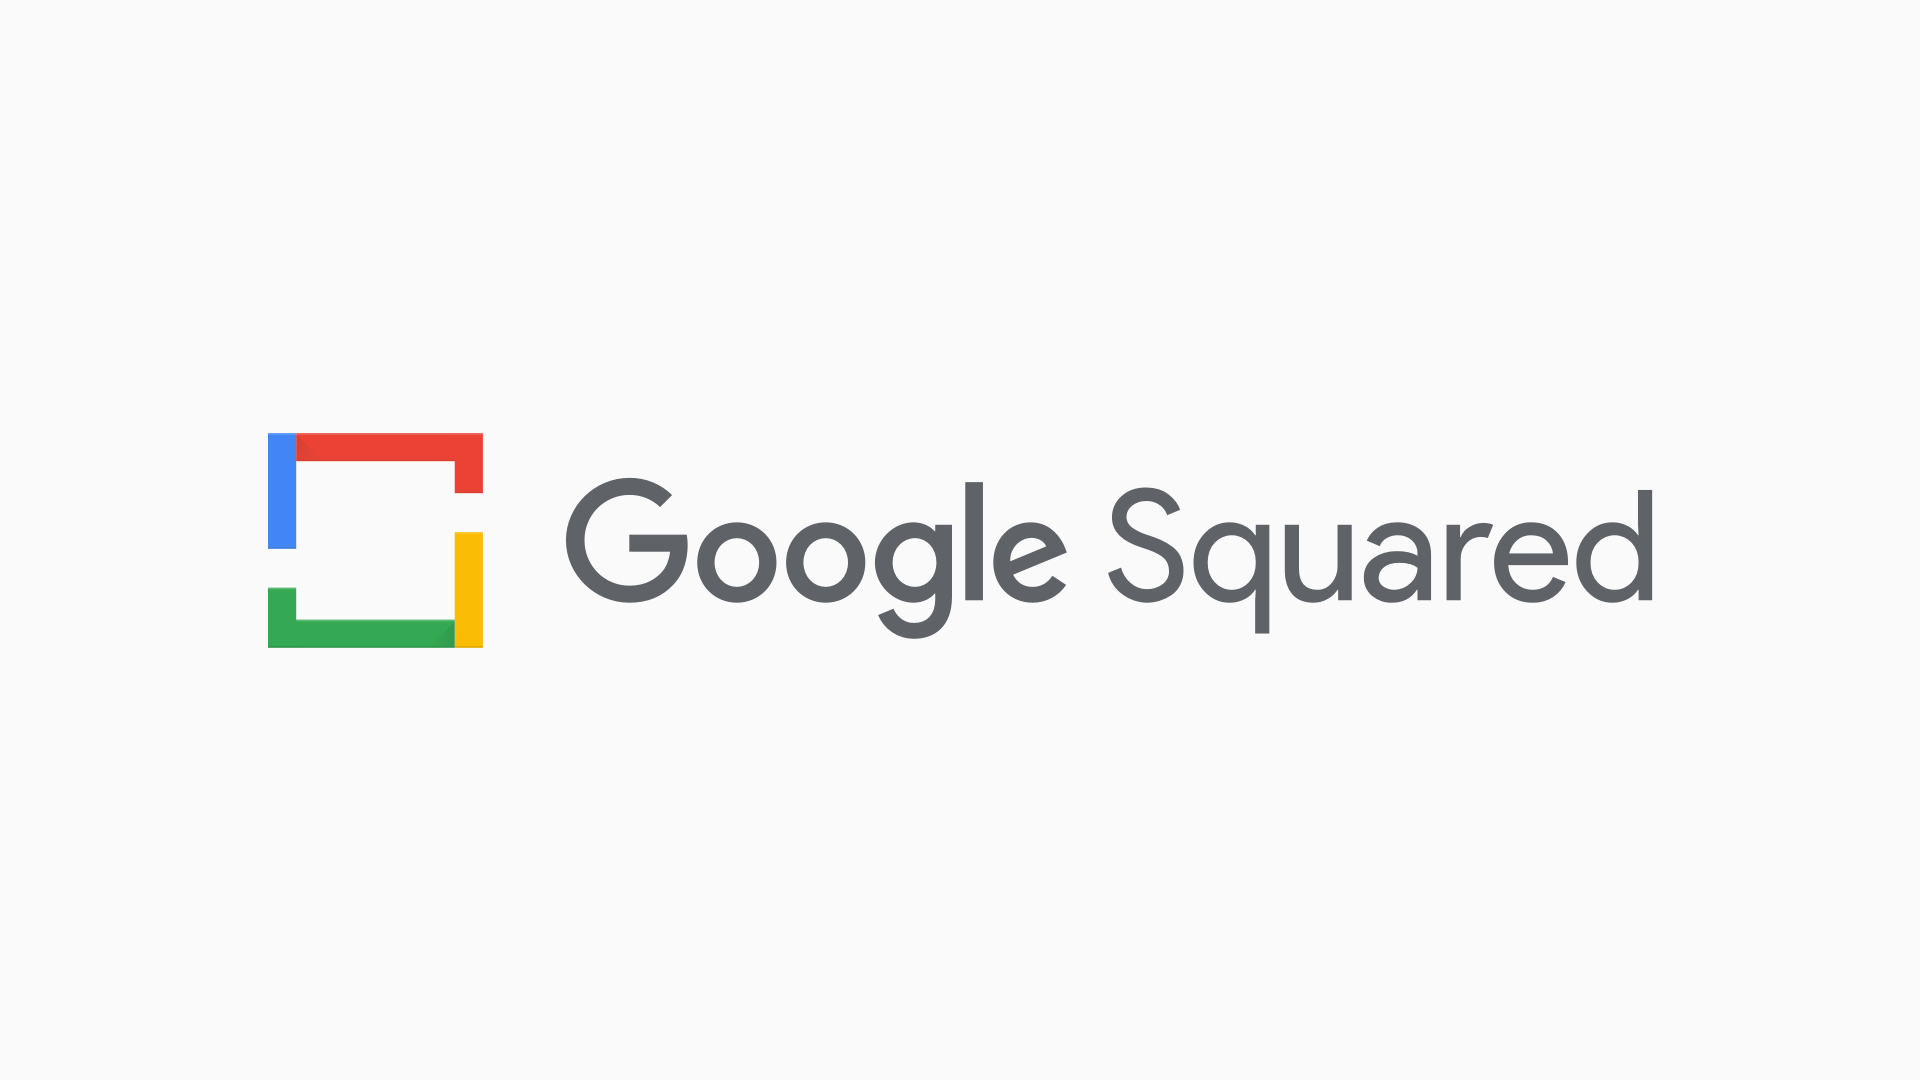 Google Squared Logo by Jack Morgan